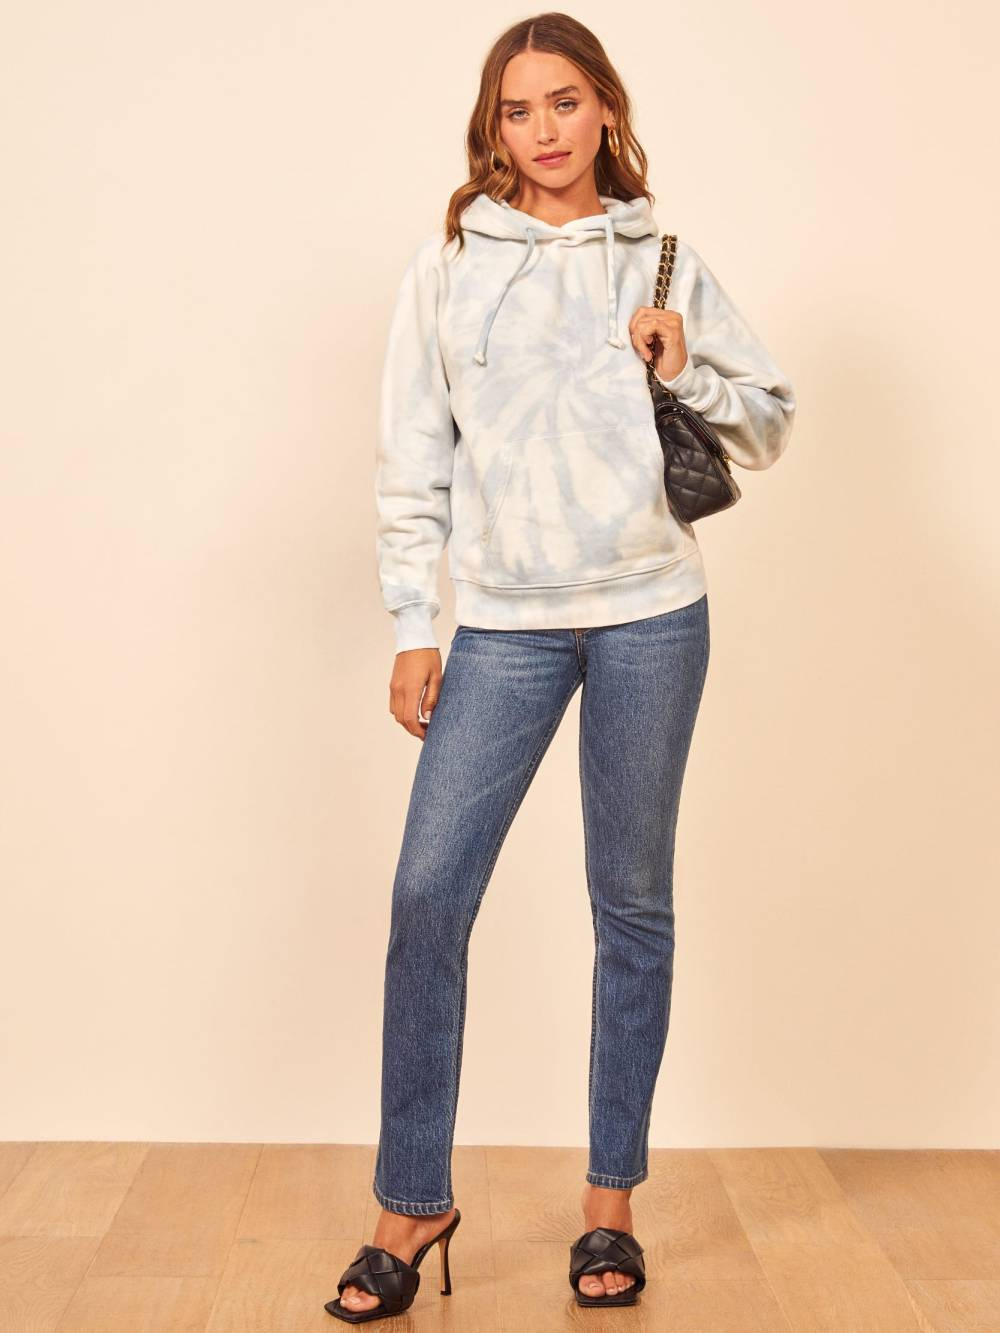 reformation sustainable ethical cheap hoodies